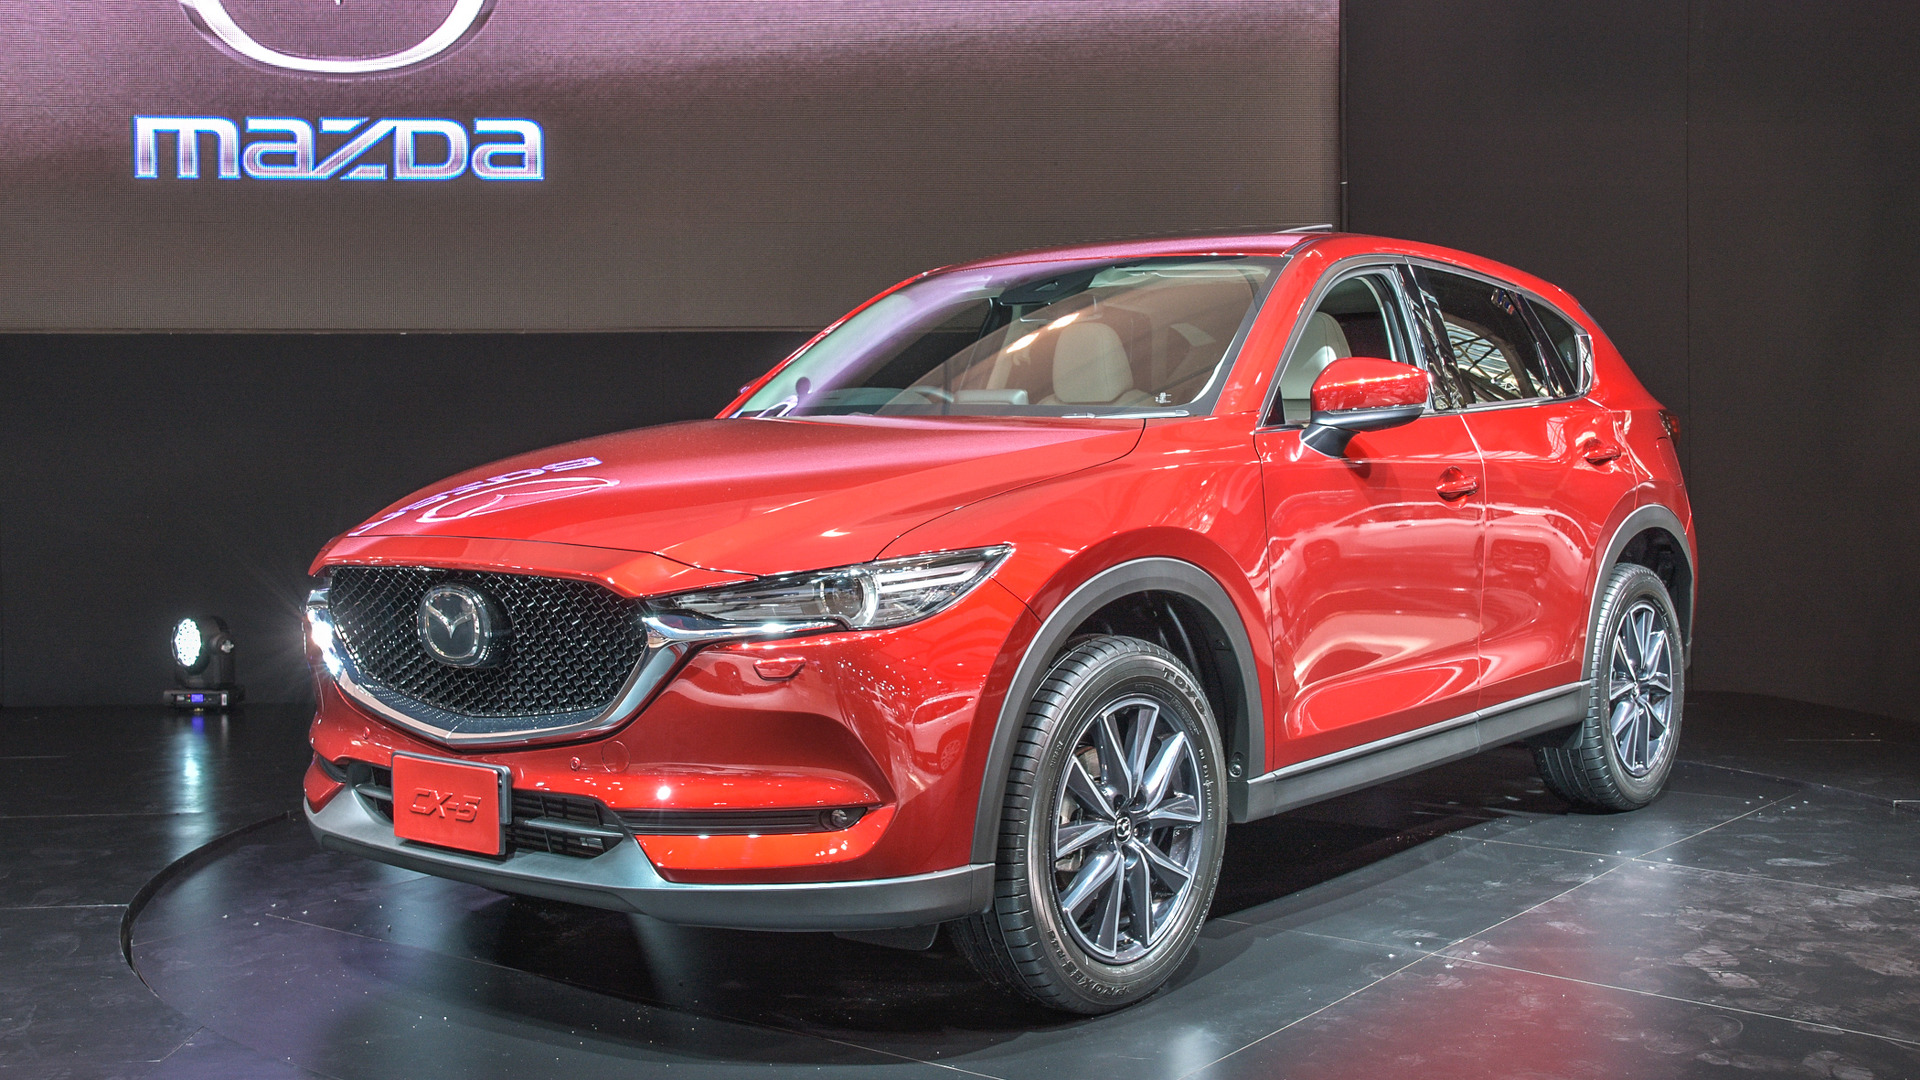 Mazda s New Diesel is Almost Here Maybe EPautos